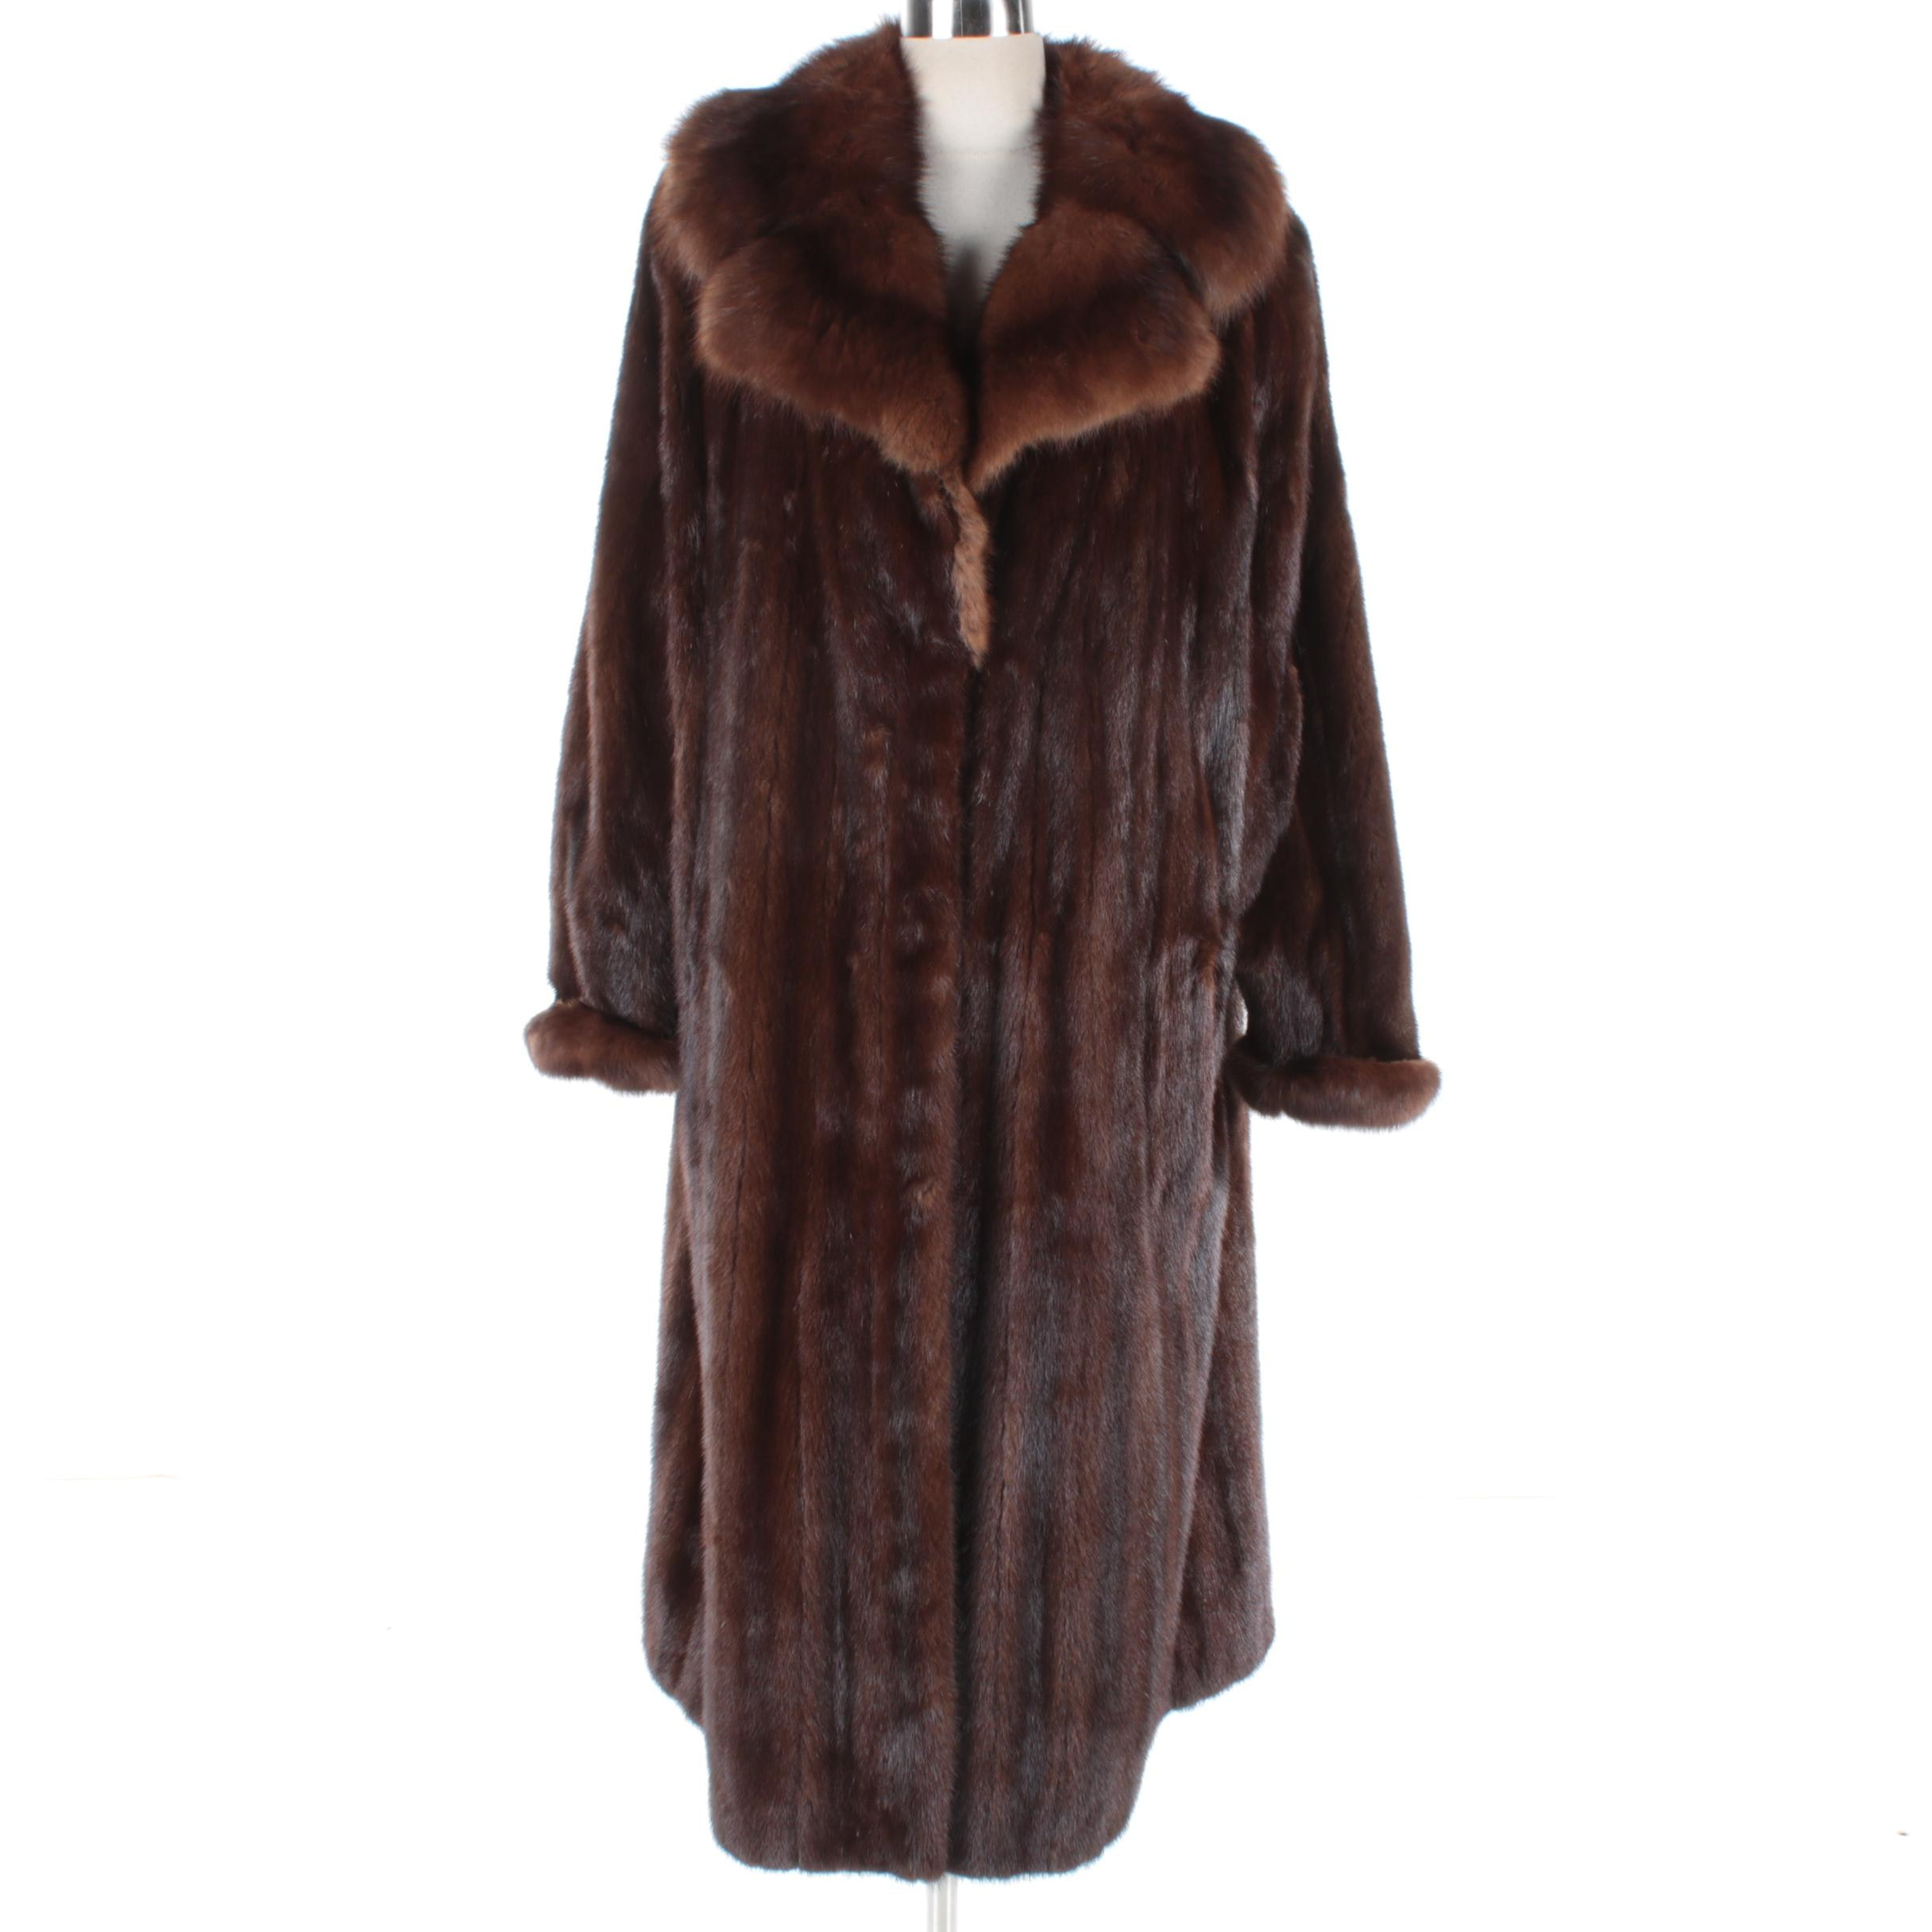 Women's Vintage Revillon Mahogany Mink Fur Coat with Marten Fur Collar and Cuffs